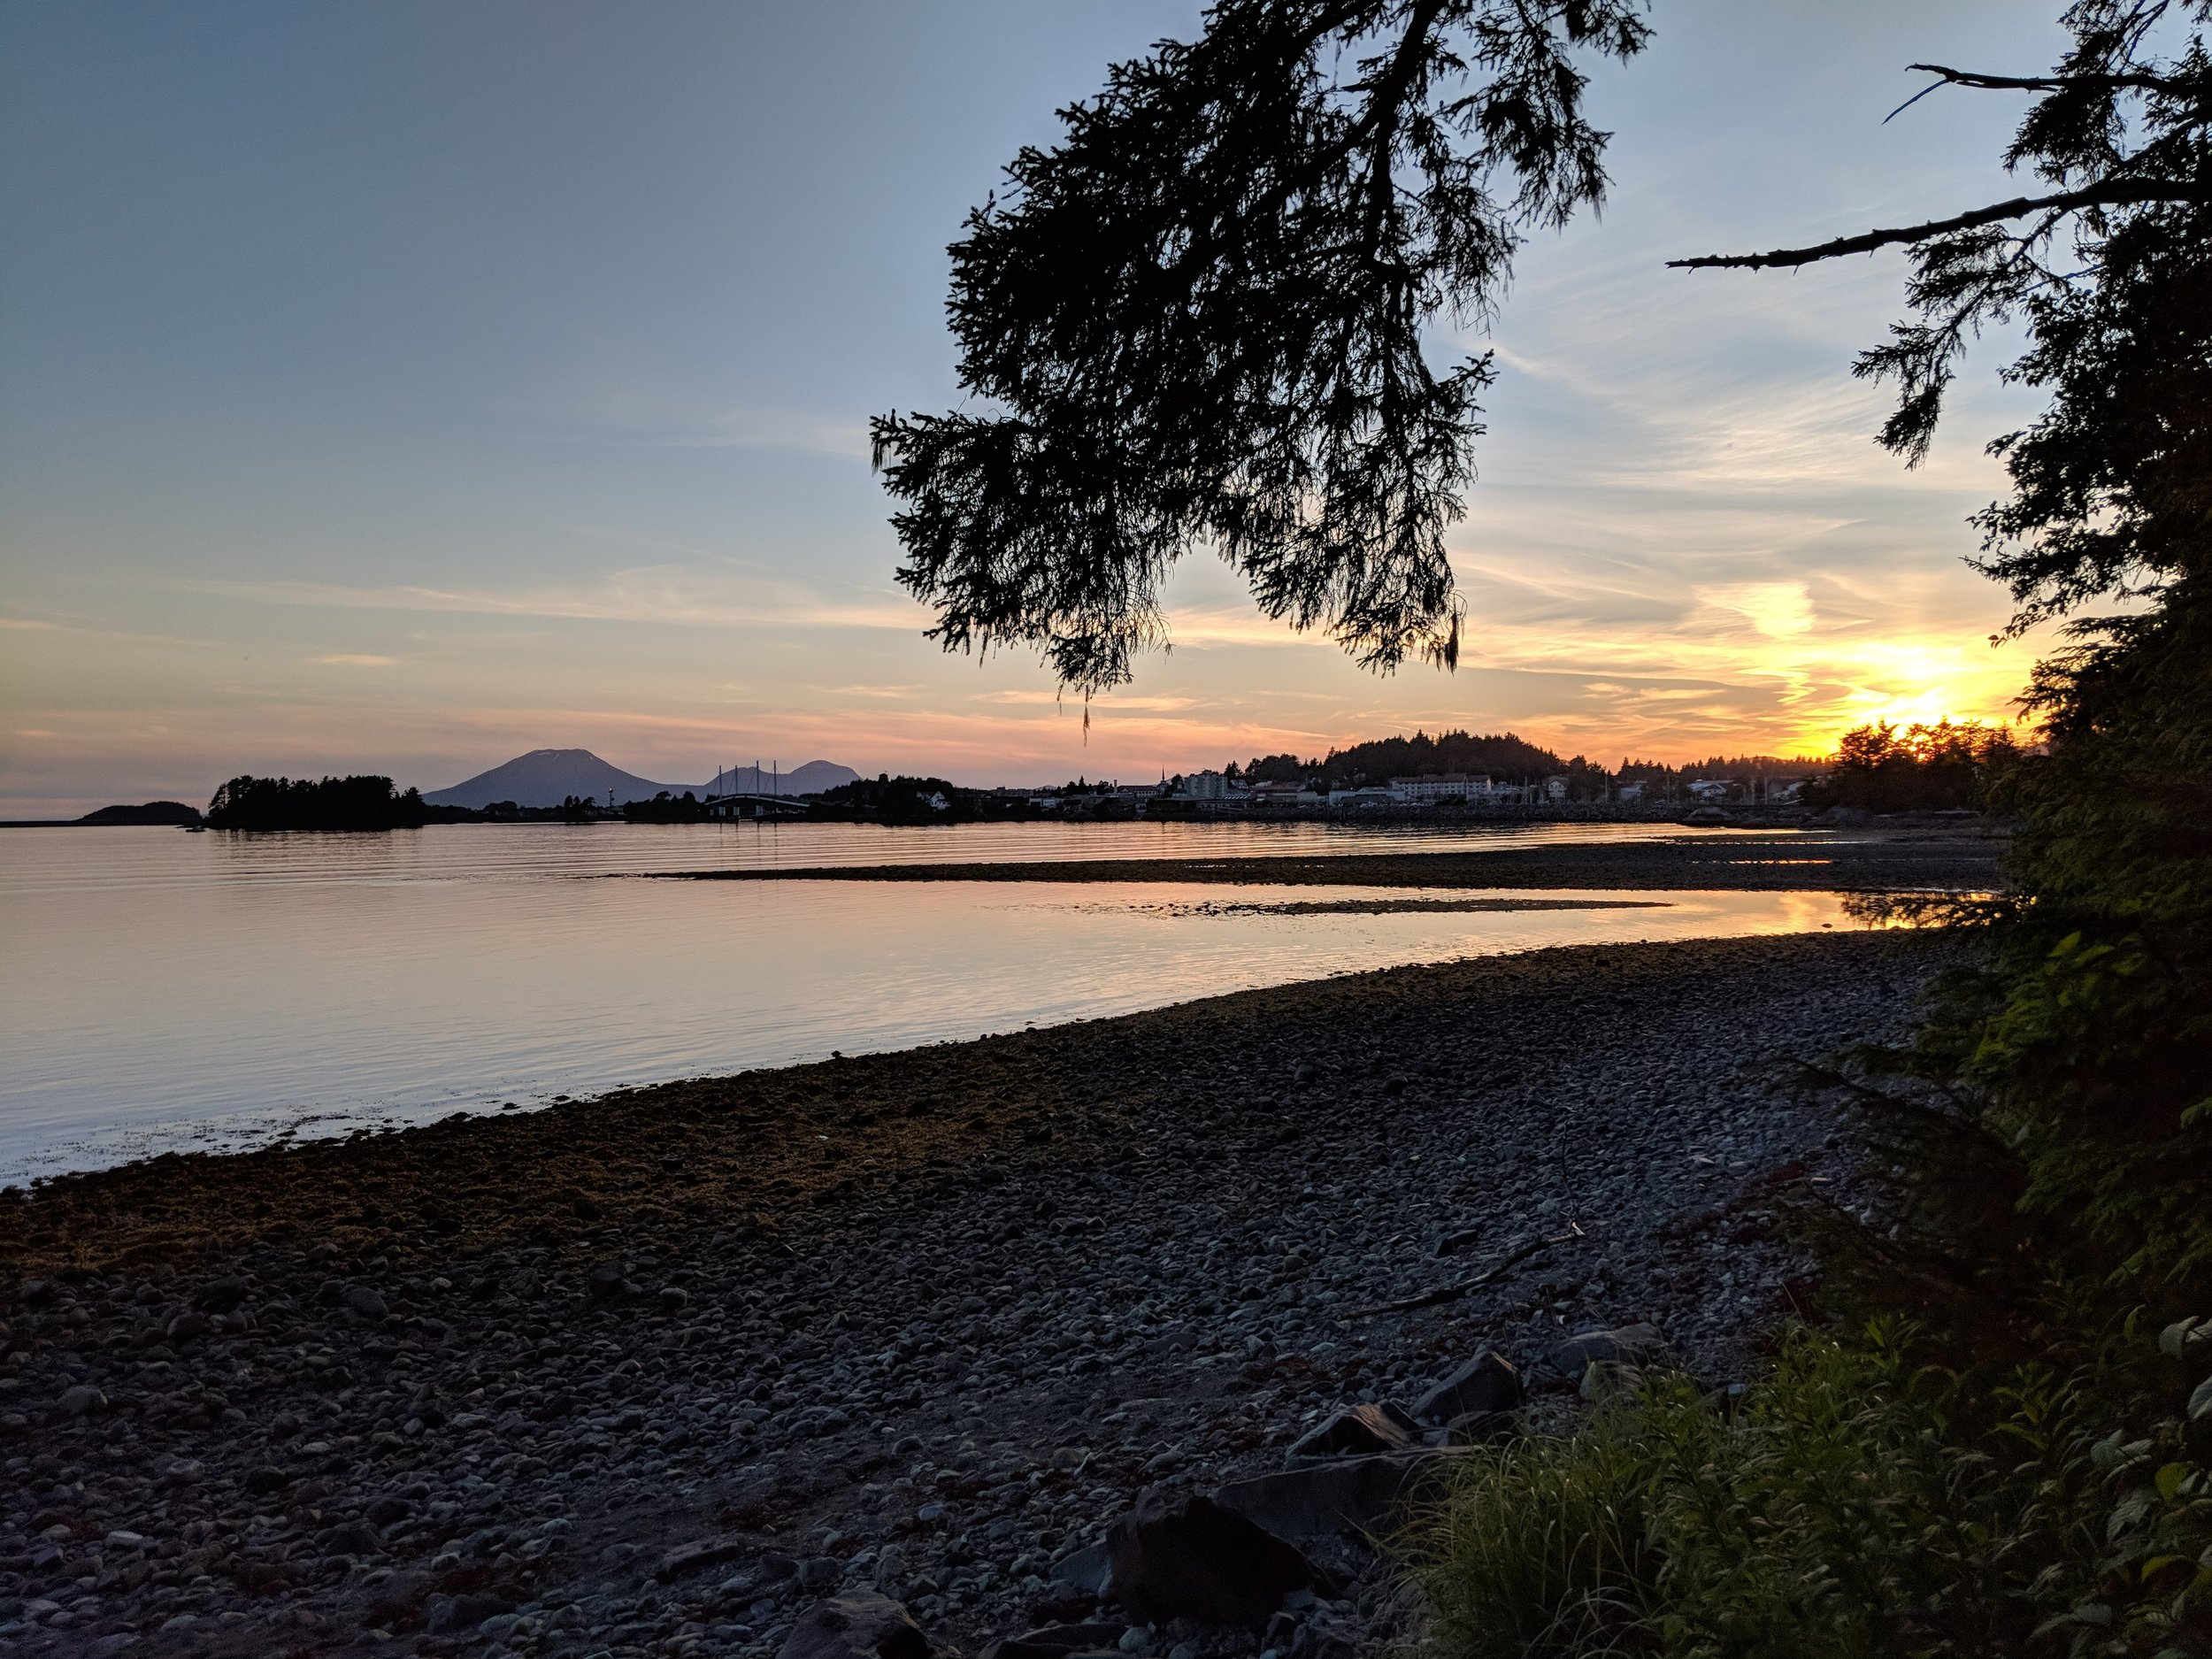 Sitka, Alaska. Taken around 11pm in the summer from Totem Park with Mt. Edgecomb in the background.  @roger.cummings